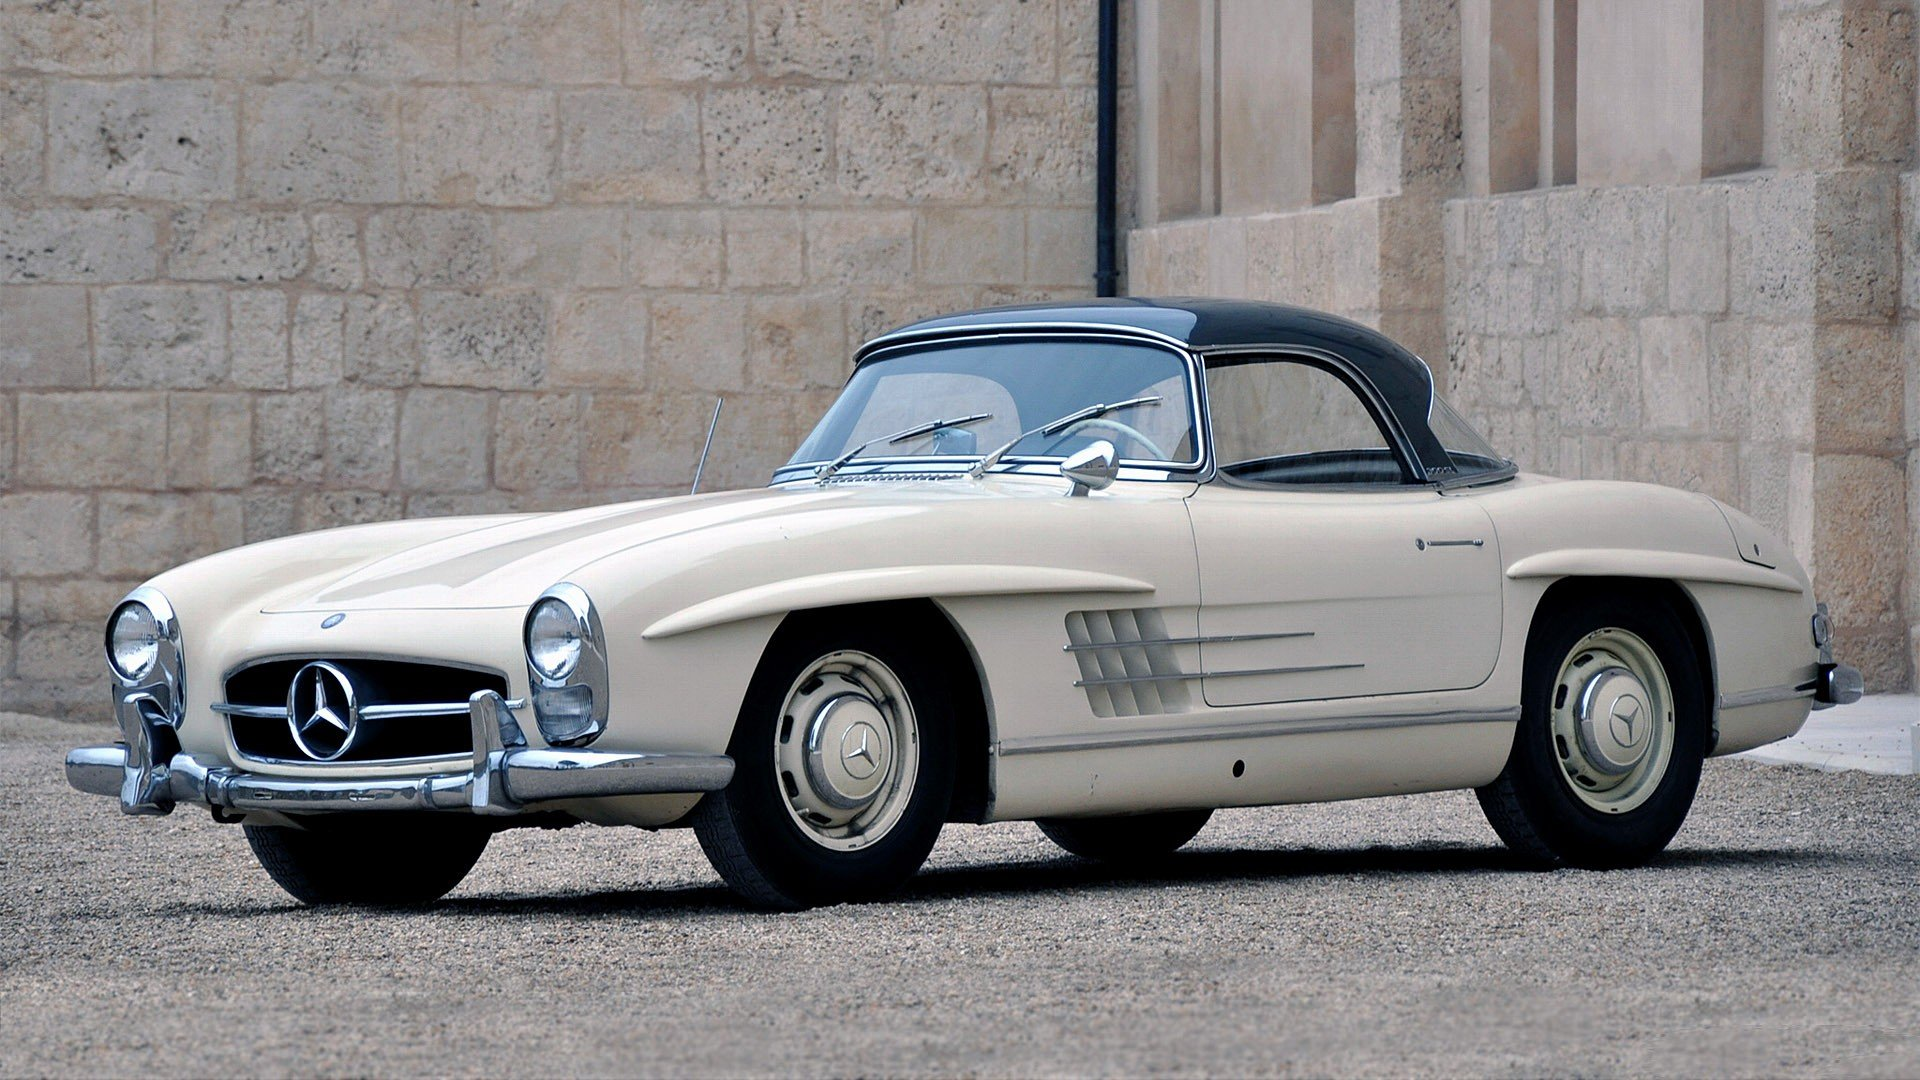 Vintage cars classic cars mercedes benz wallpaper for Vintage mercedes benz